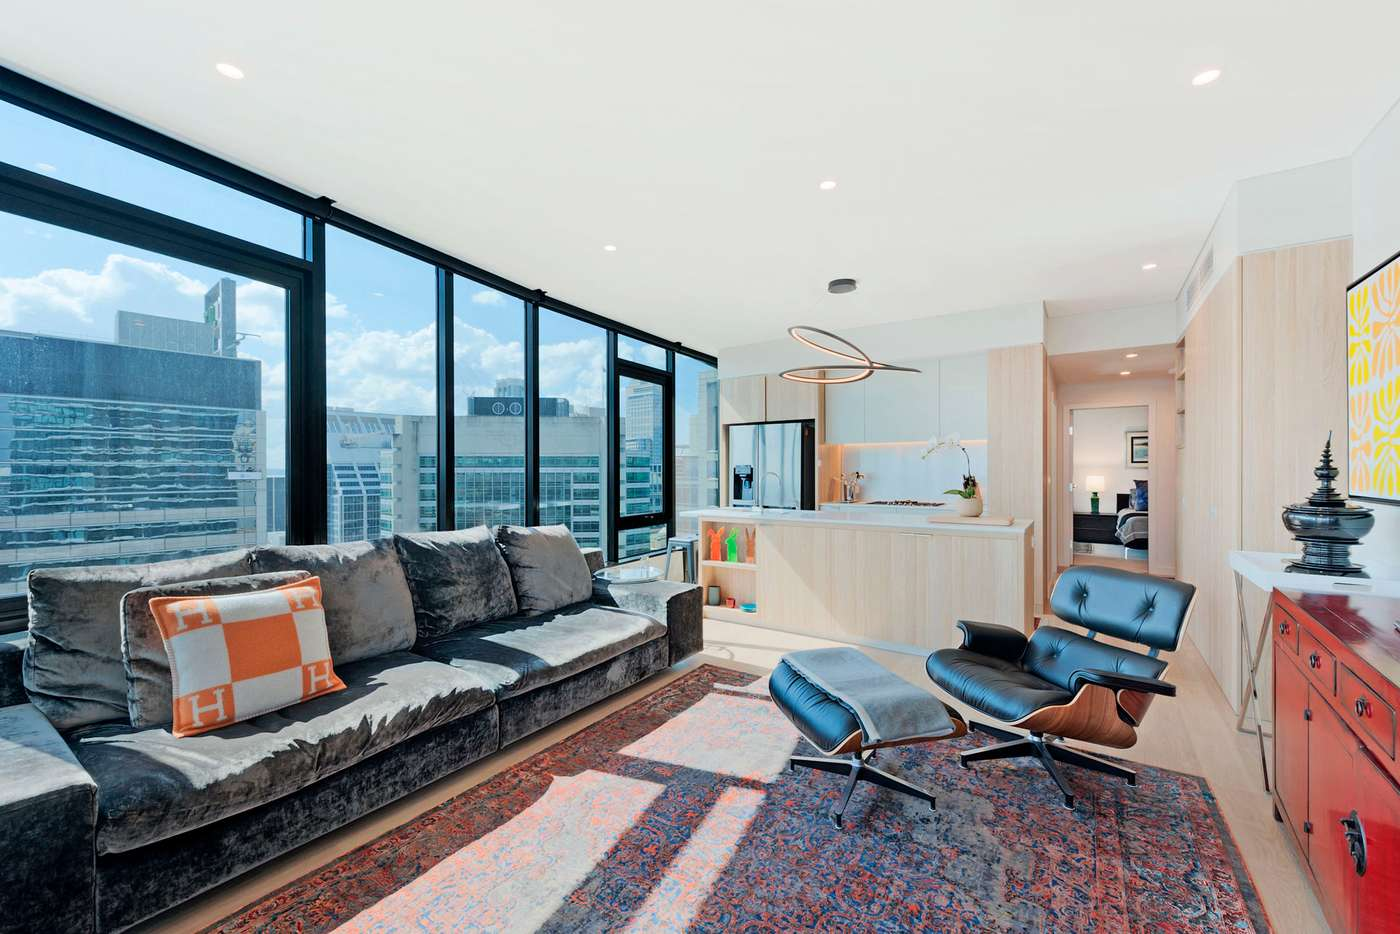 Main view of Homely apartment listing, 3302/38 York Street, Sydney NSW 2000